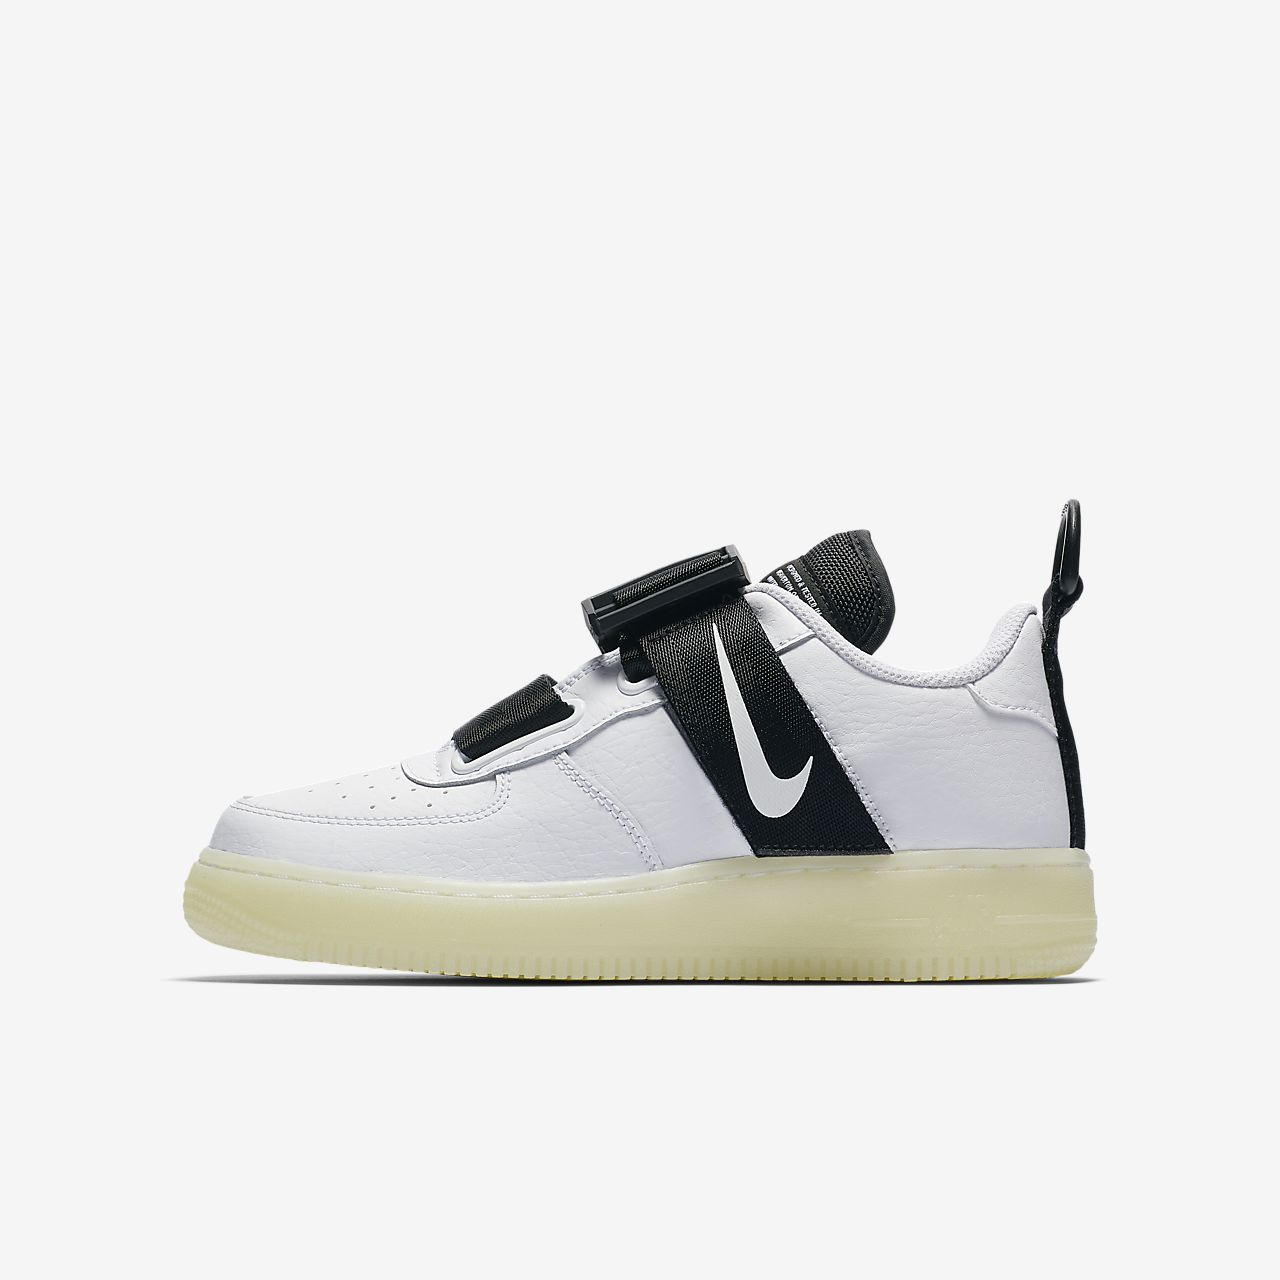 Nike Air Force 1 Utility QS Big Kids' Shoe